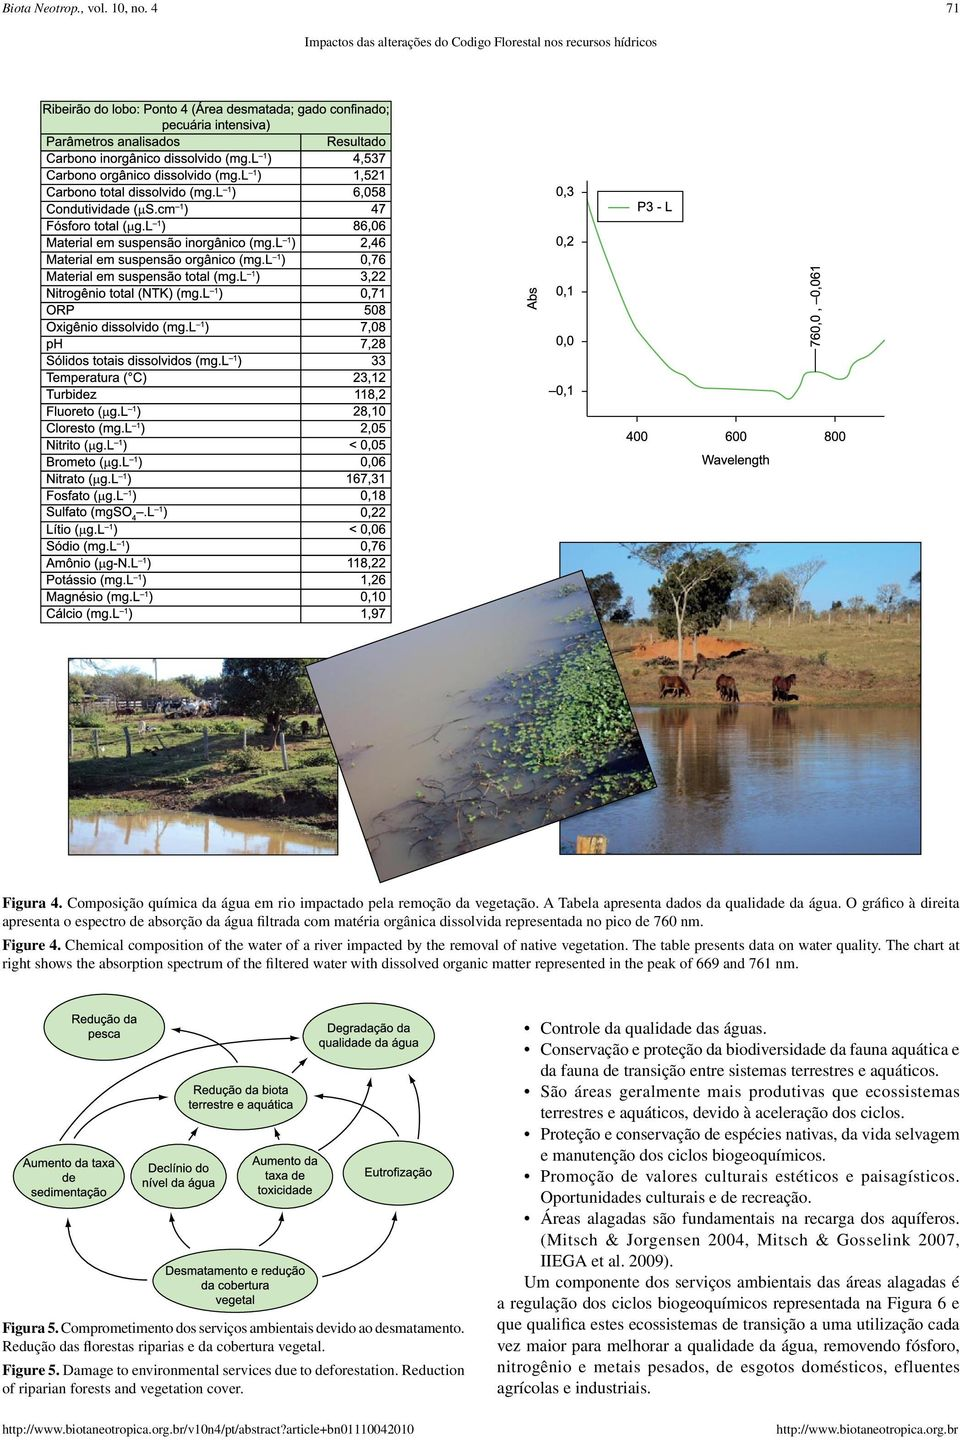 Chemical composition of the water of a river impacted by the removal of native vegetation. The table presents data on water quality.